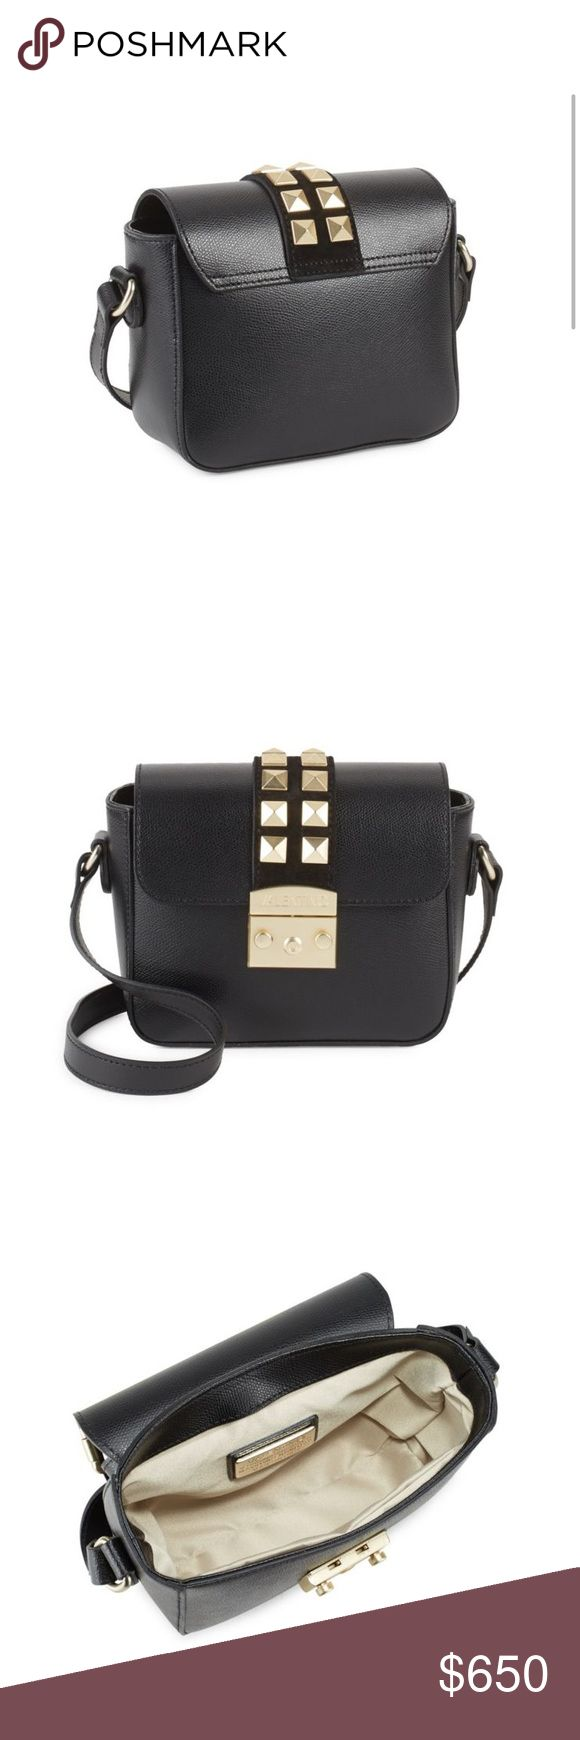 Beautiful black Valentino studded satchel! This is a gorgeous black Valentino by Mario Valentino studded satchel! Brand new, authentic, with tags as always! Valentino Bags